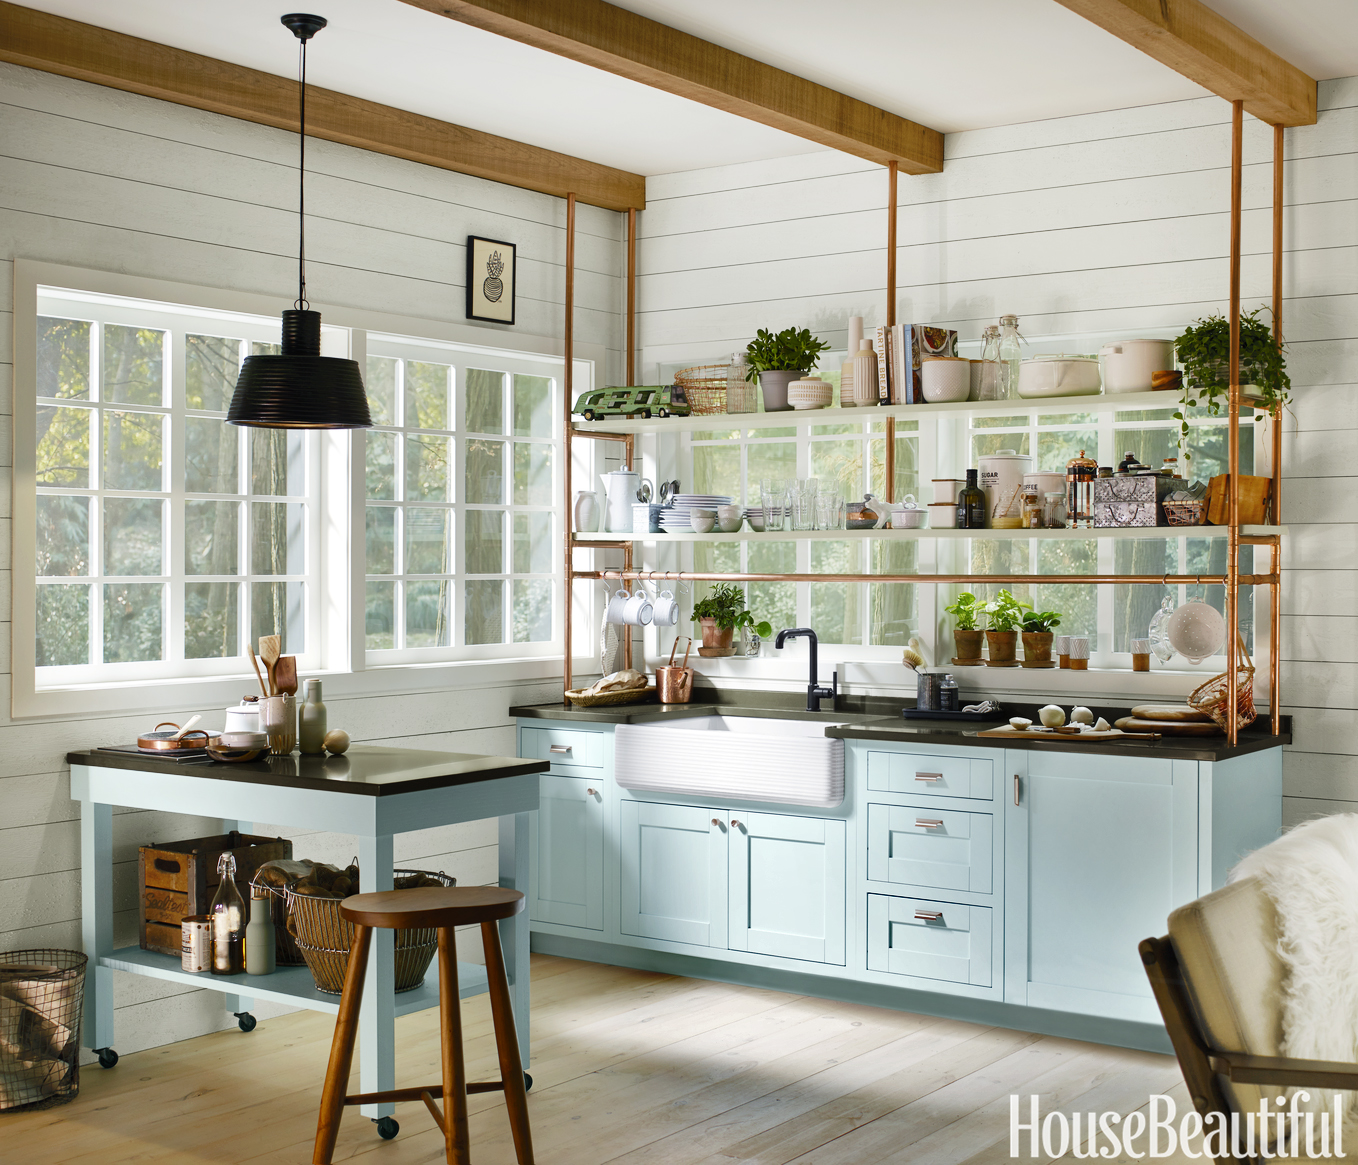 20 unique kitchen storage ideas - easy storage solutions for kitchens